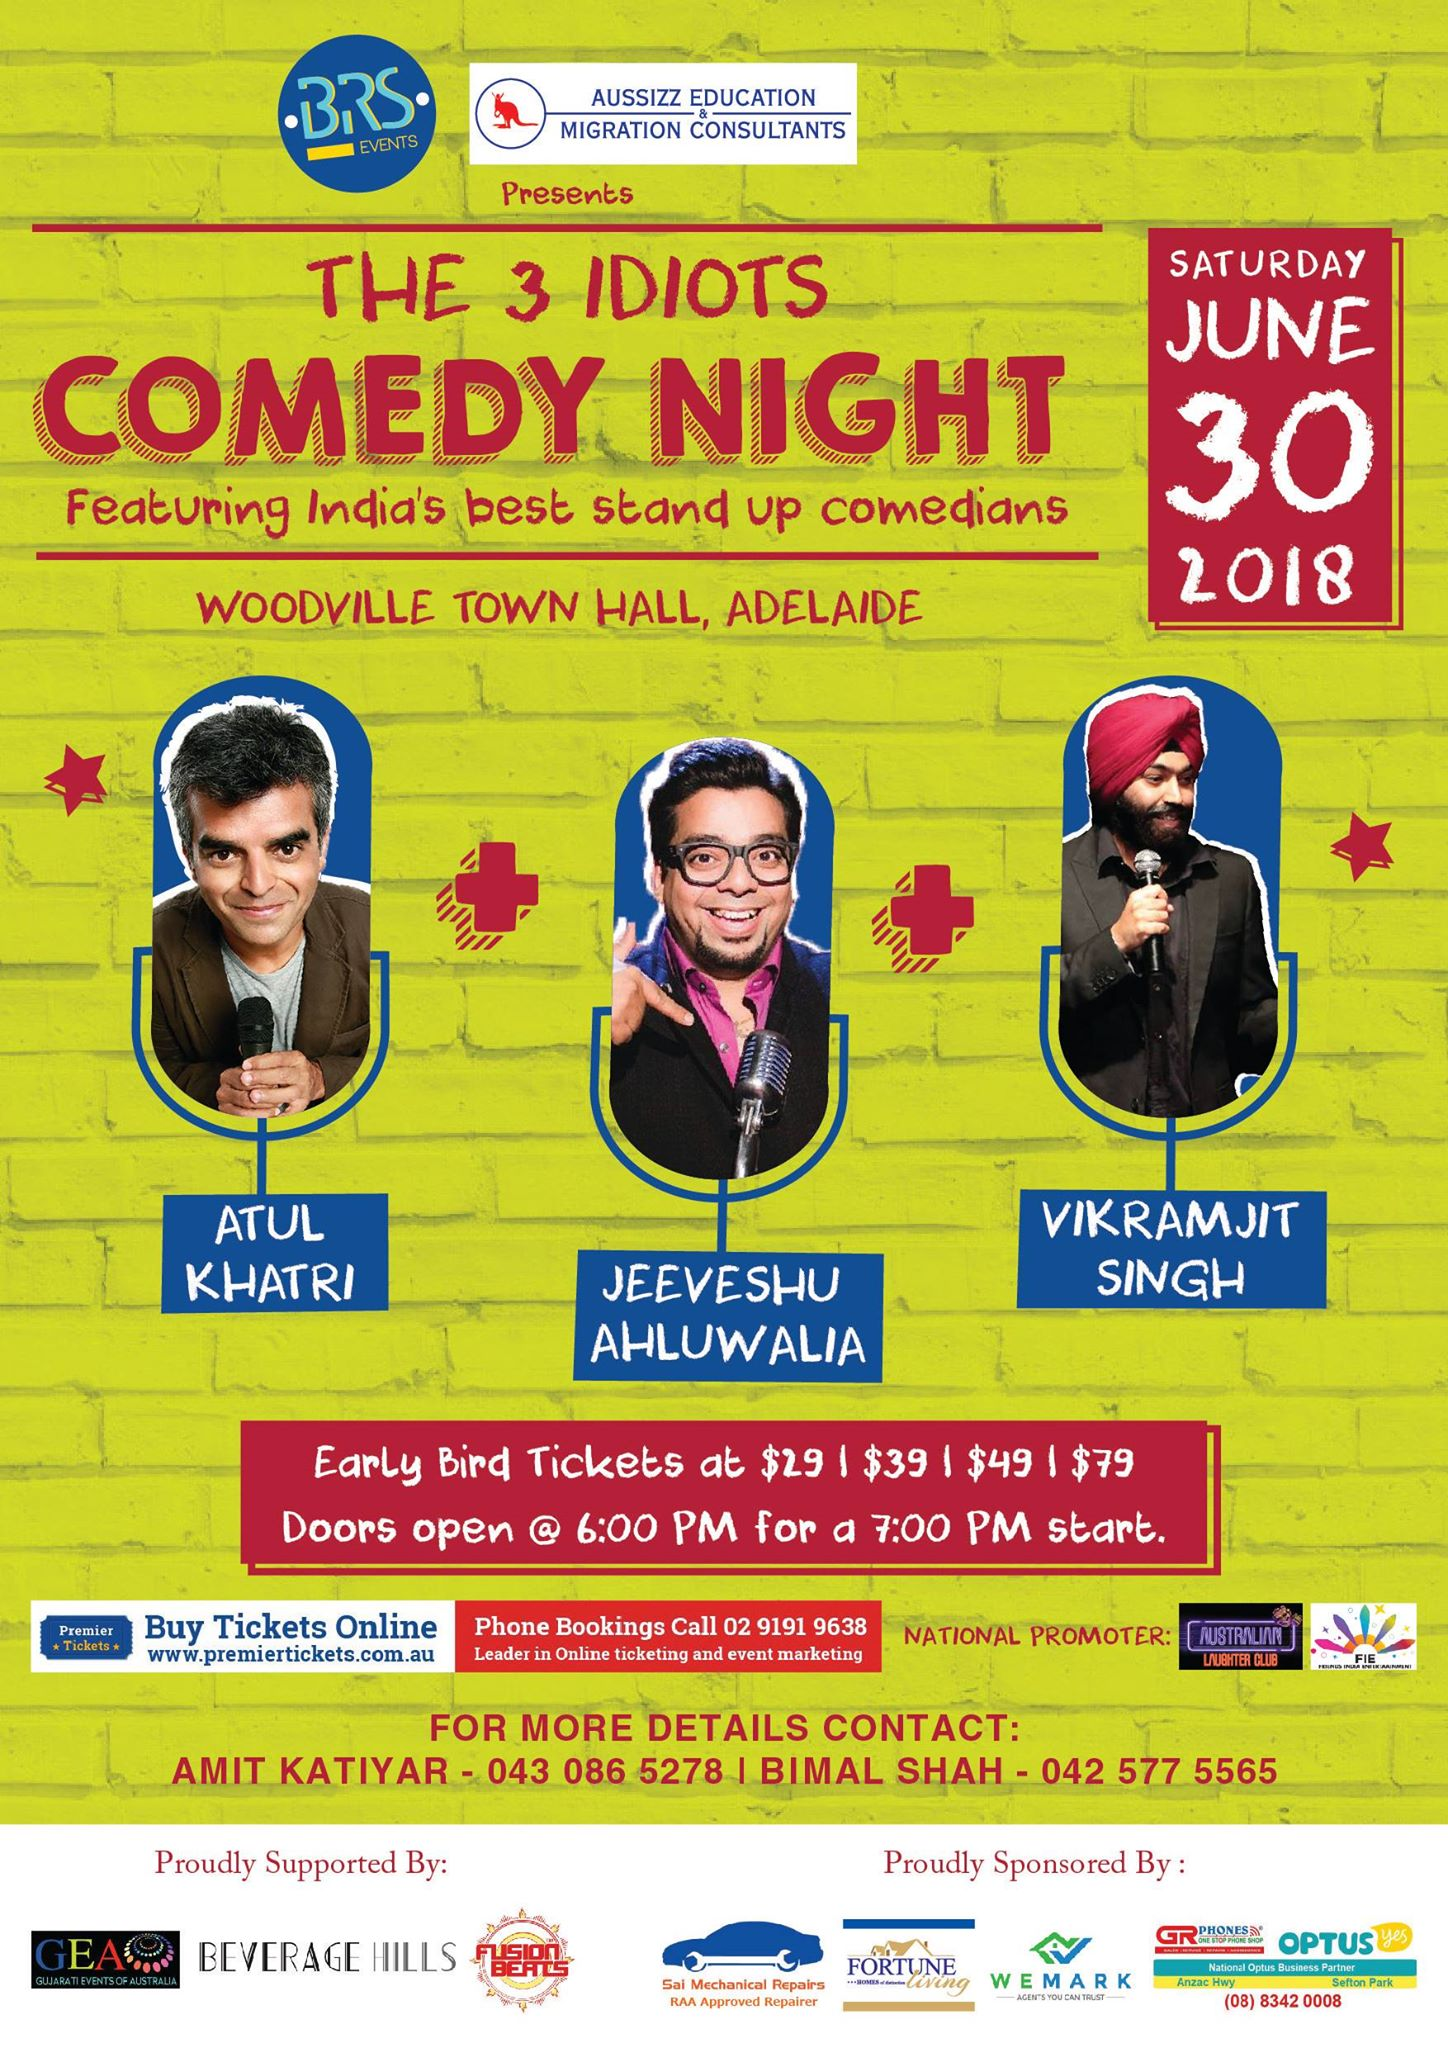 The 3 Idiots Comedy Night in Adelaide